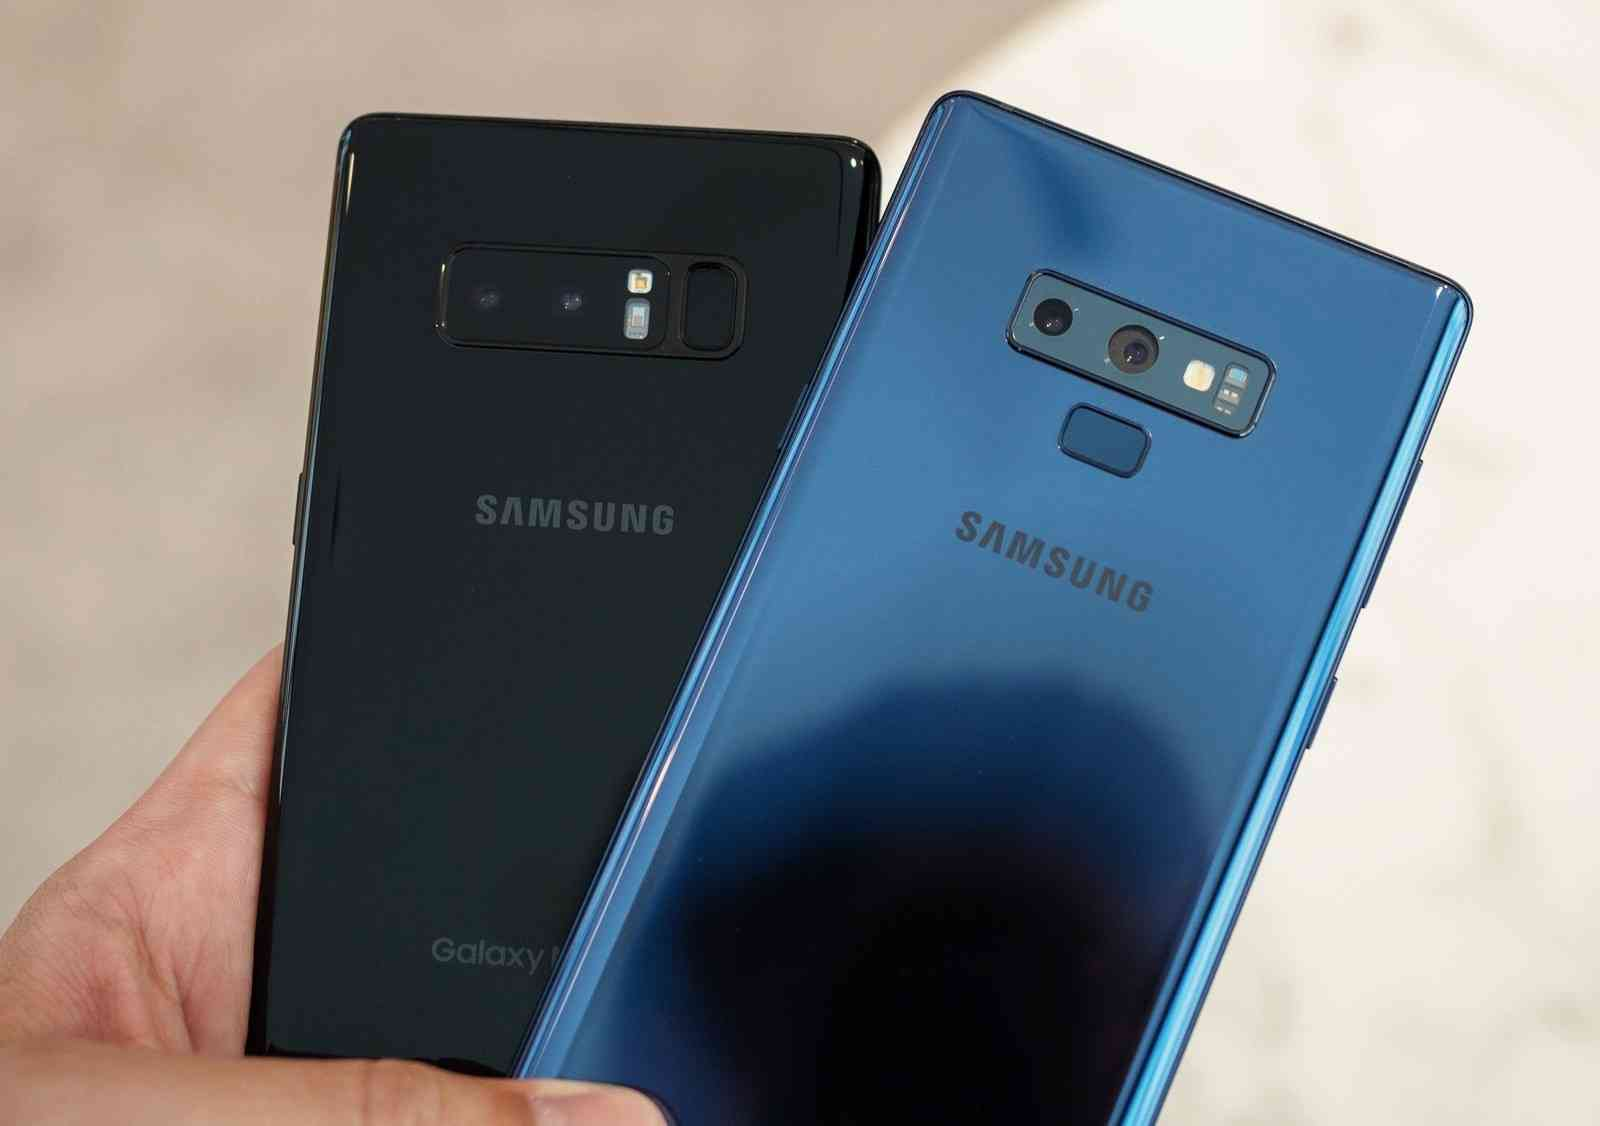 The Samsung Galaxy Note 9 Vs The Samsung Galaxy Note 8